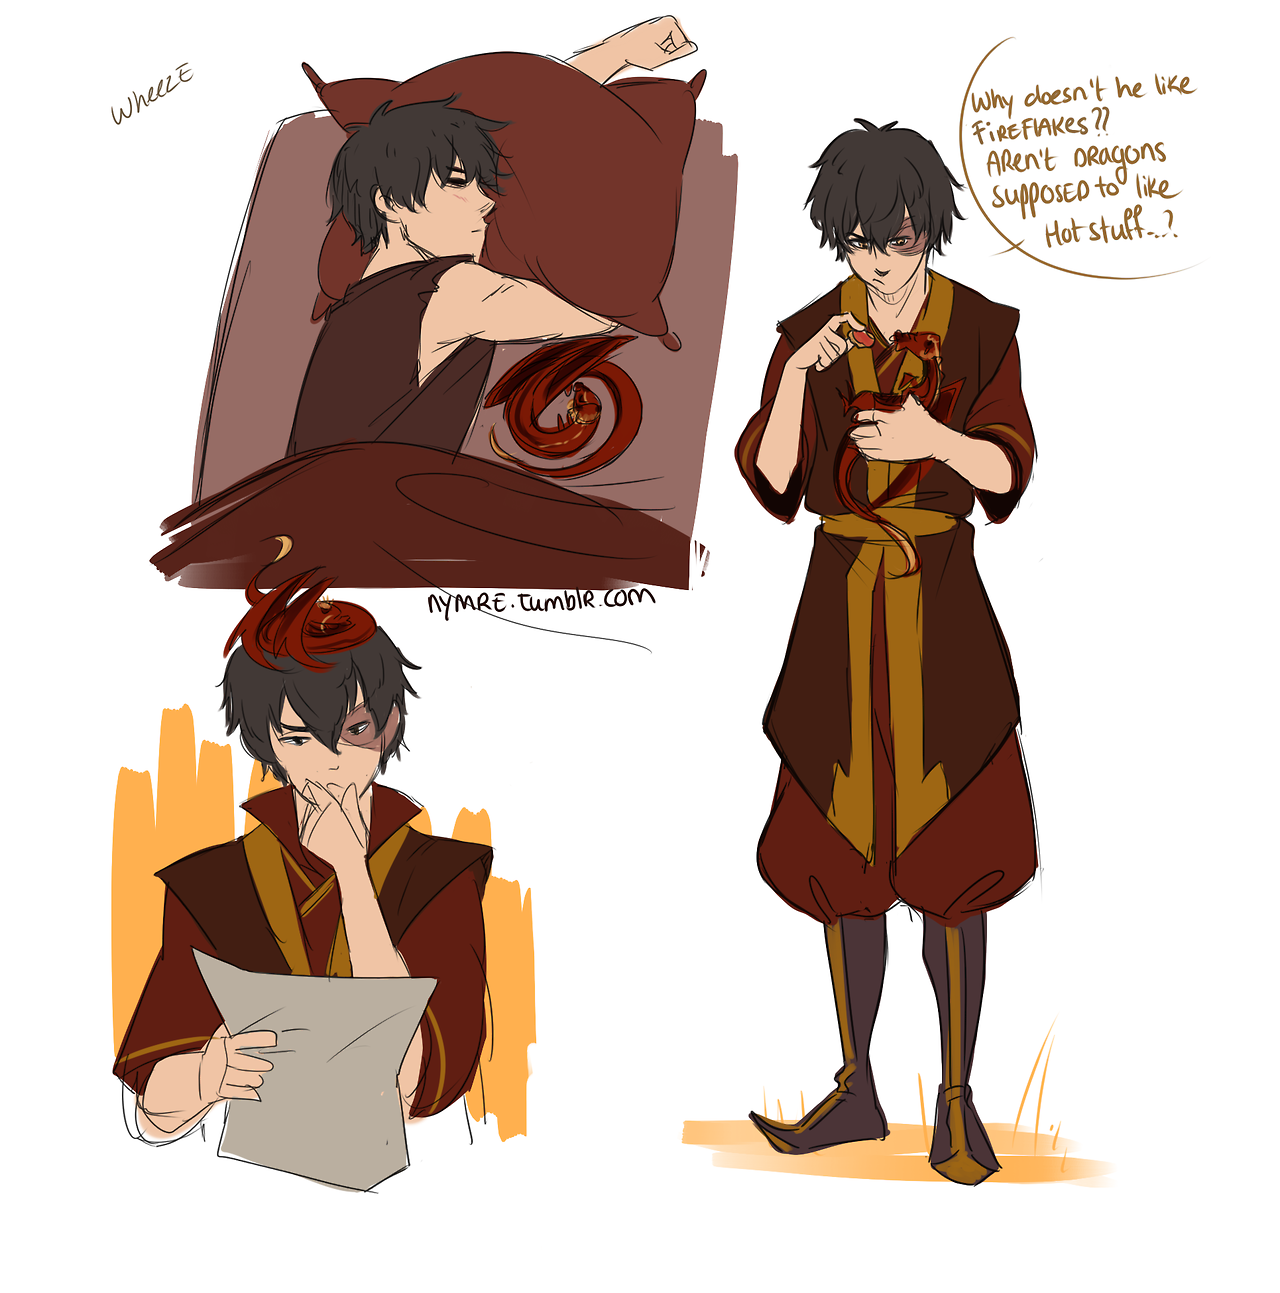 Zuko and the Baby Dragon | The Last Airbender | The Legend of Korra | Avatar